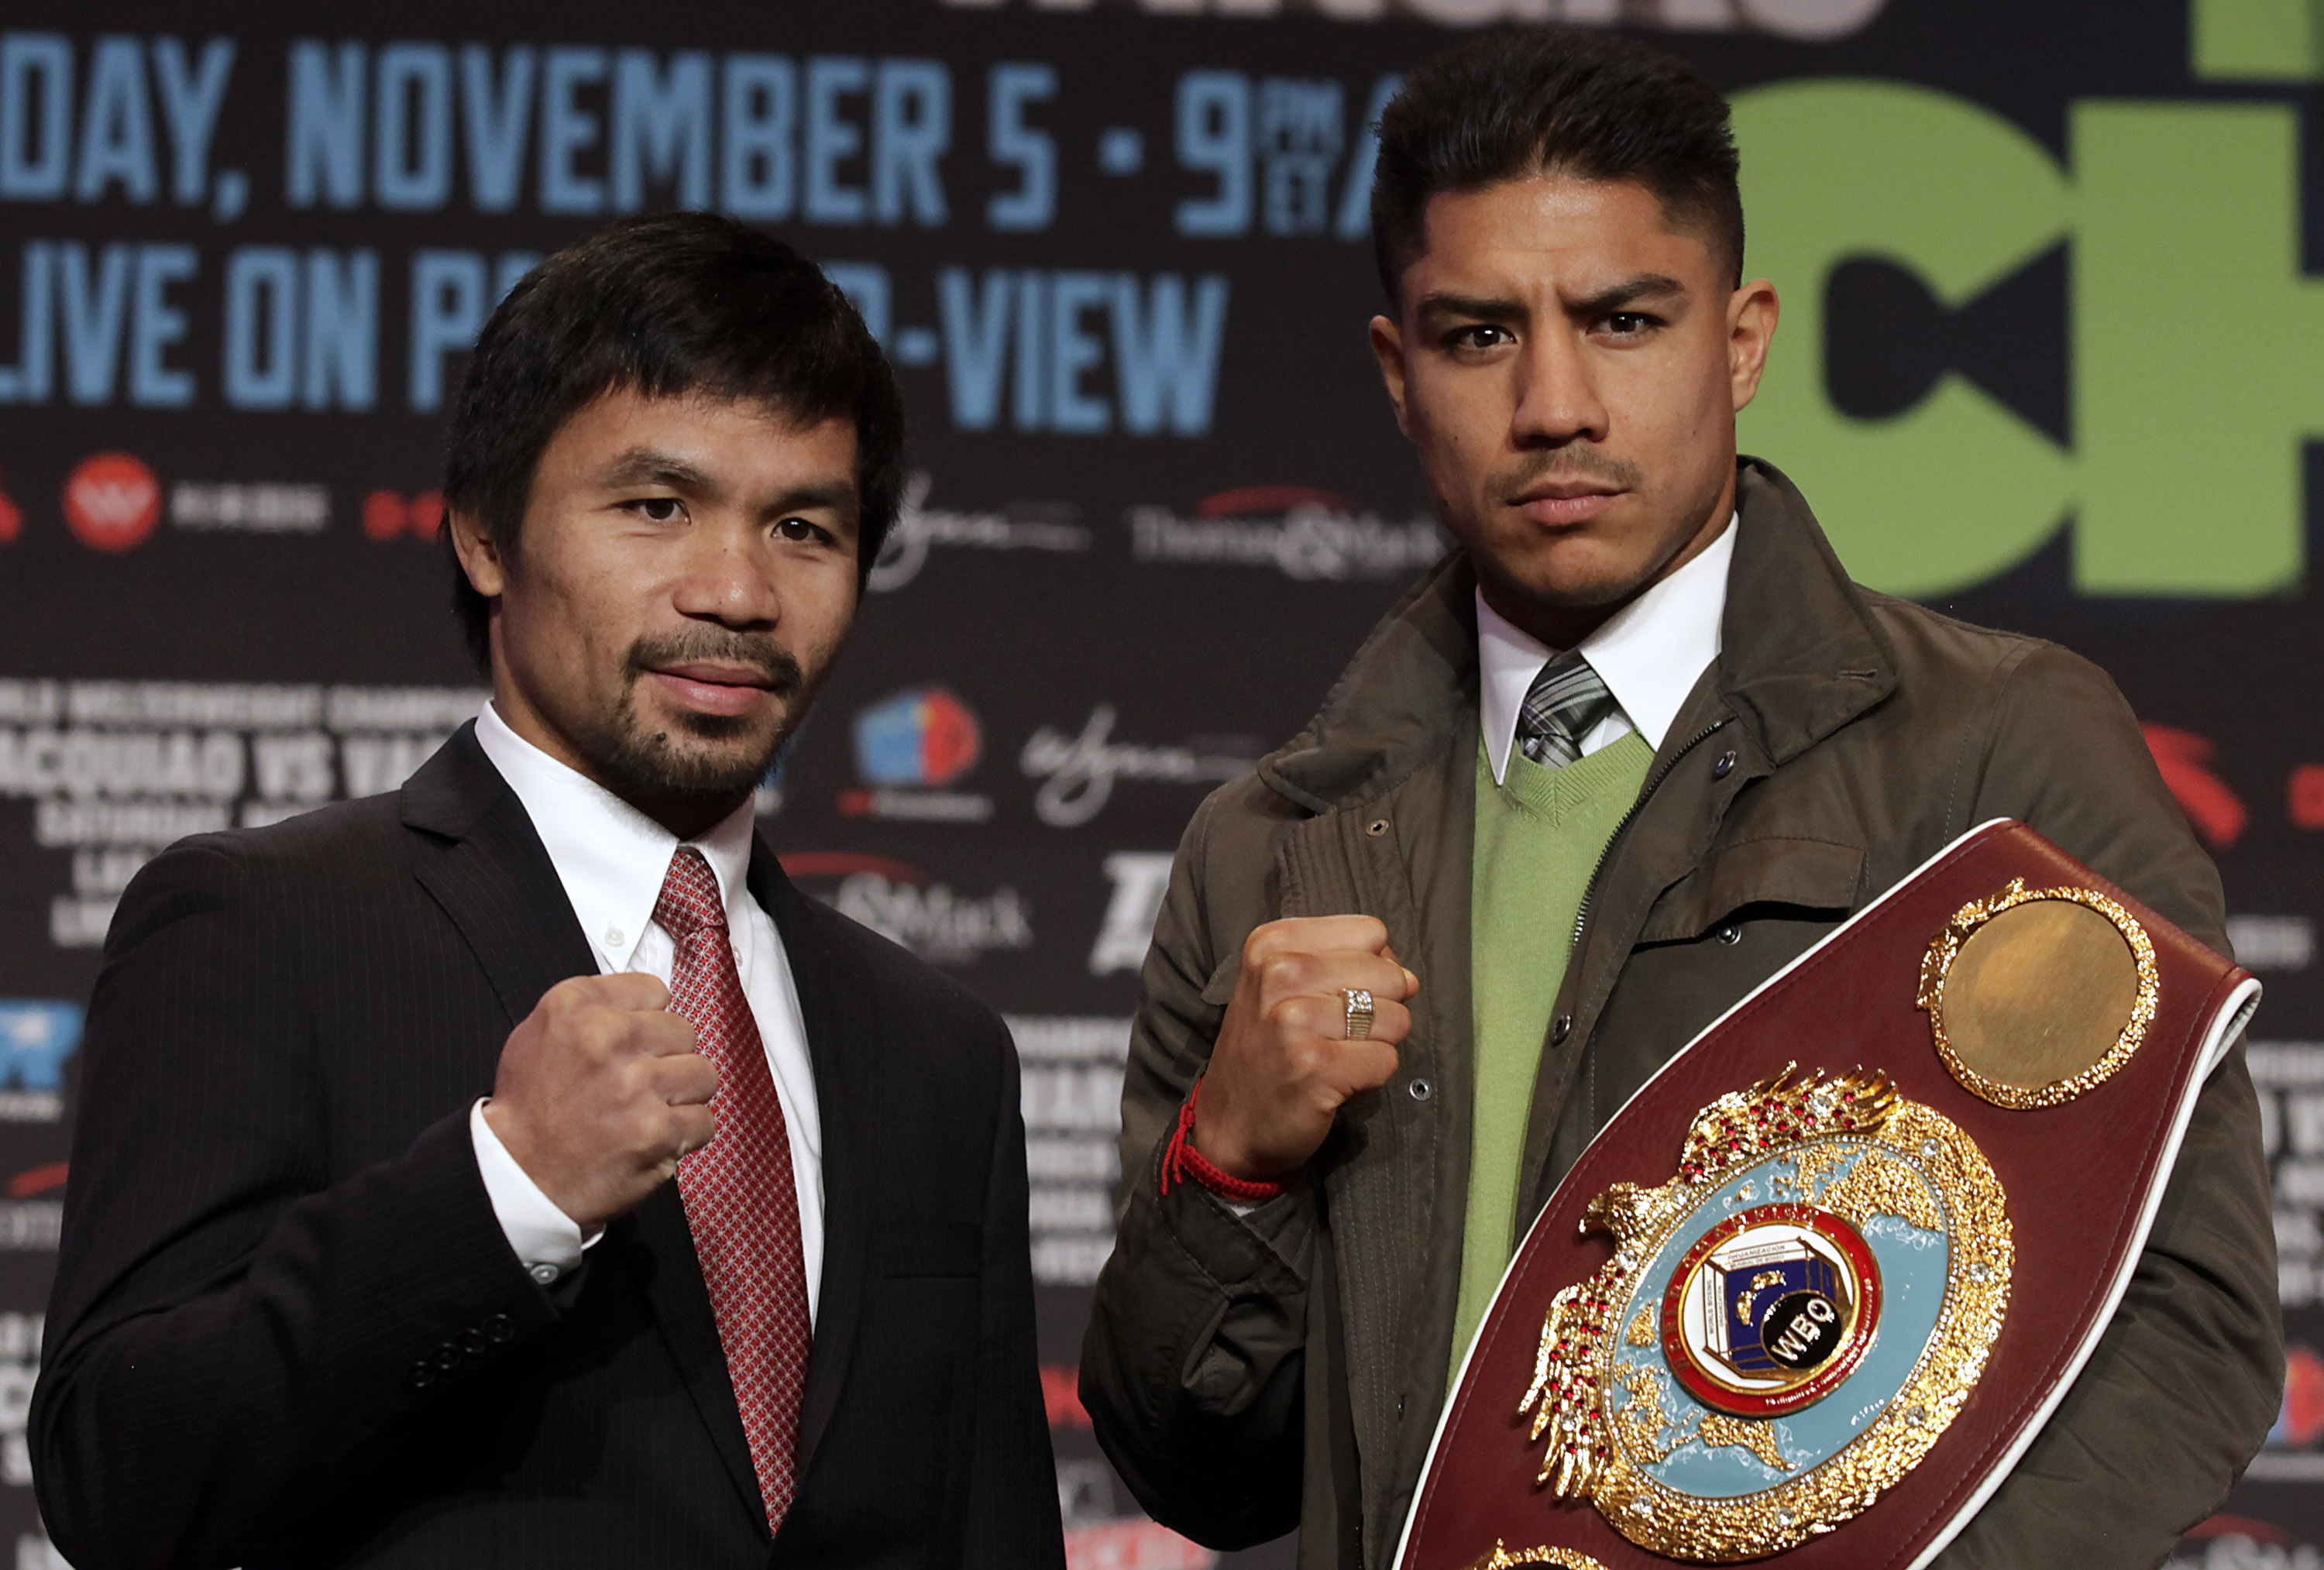 Manny Pacquiao vs. Jessie Vargas hora, Manny Pacquiao vs. Jessie Vargas dia, Manny Pacquiao vs. Jessie Vargas fecha, Manny Pacquiao vs. Jessie Vargas canal, Pacquiao vs. Vargas hora, Pacquiao vs. Vargas dia, Pacquiao vs. Vargas fecha, Pacquiao vs. Vargas canal